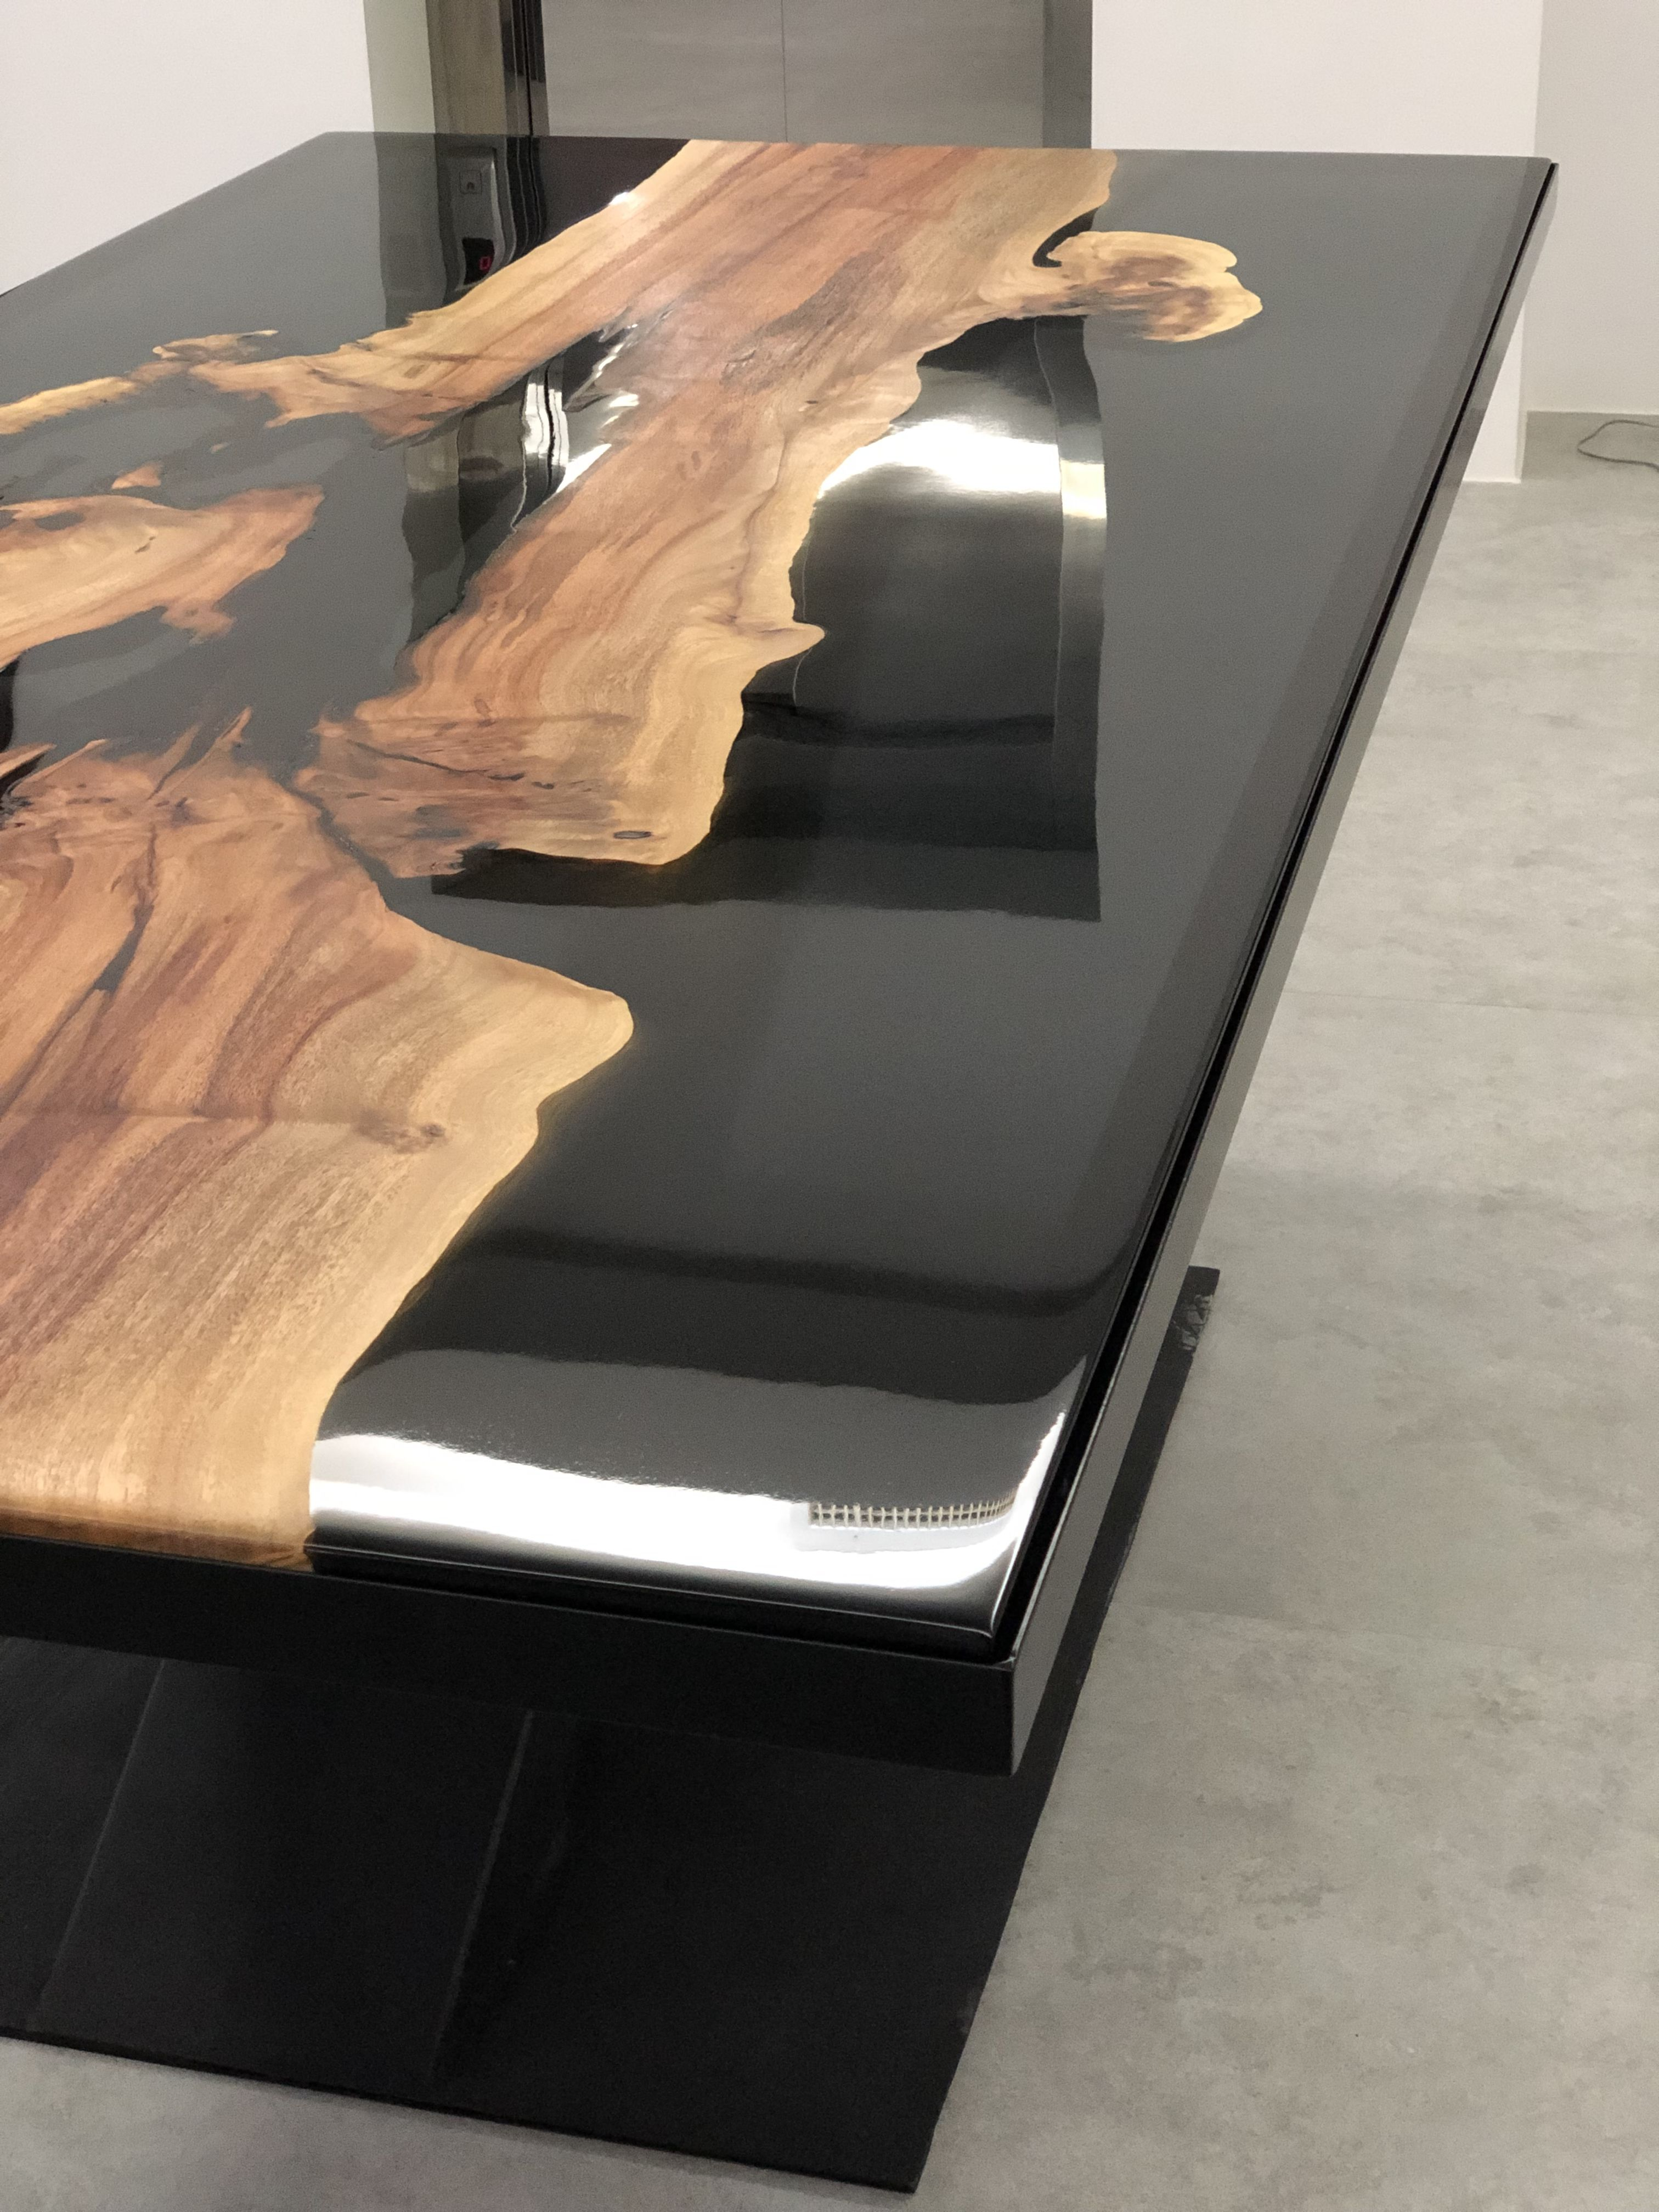 Pin By Rk On Mize In 2019 Resin Furniture Wood Resin